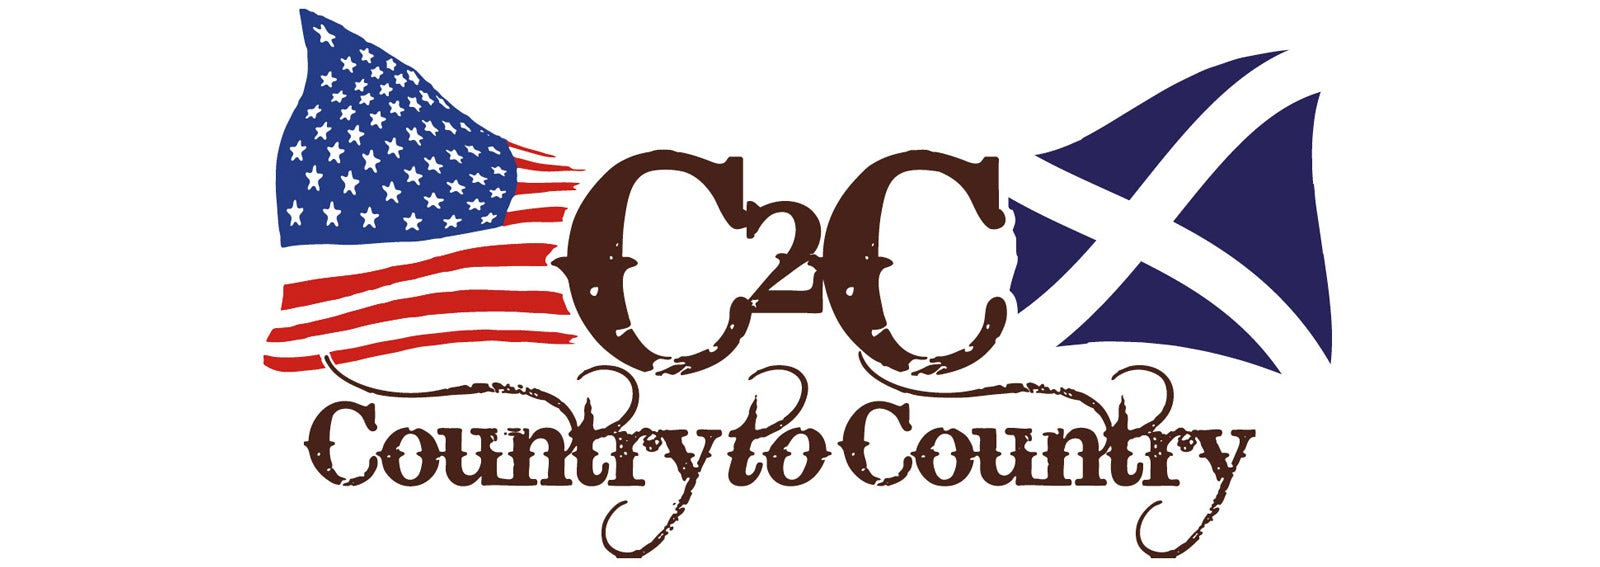 CountrytoCountry2018_1600x567.jpg